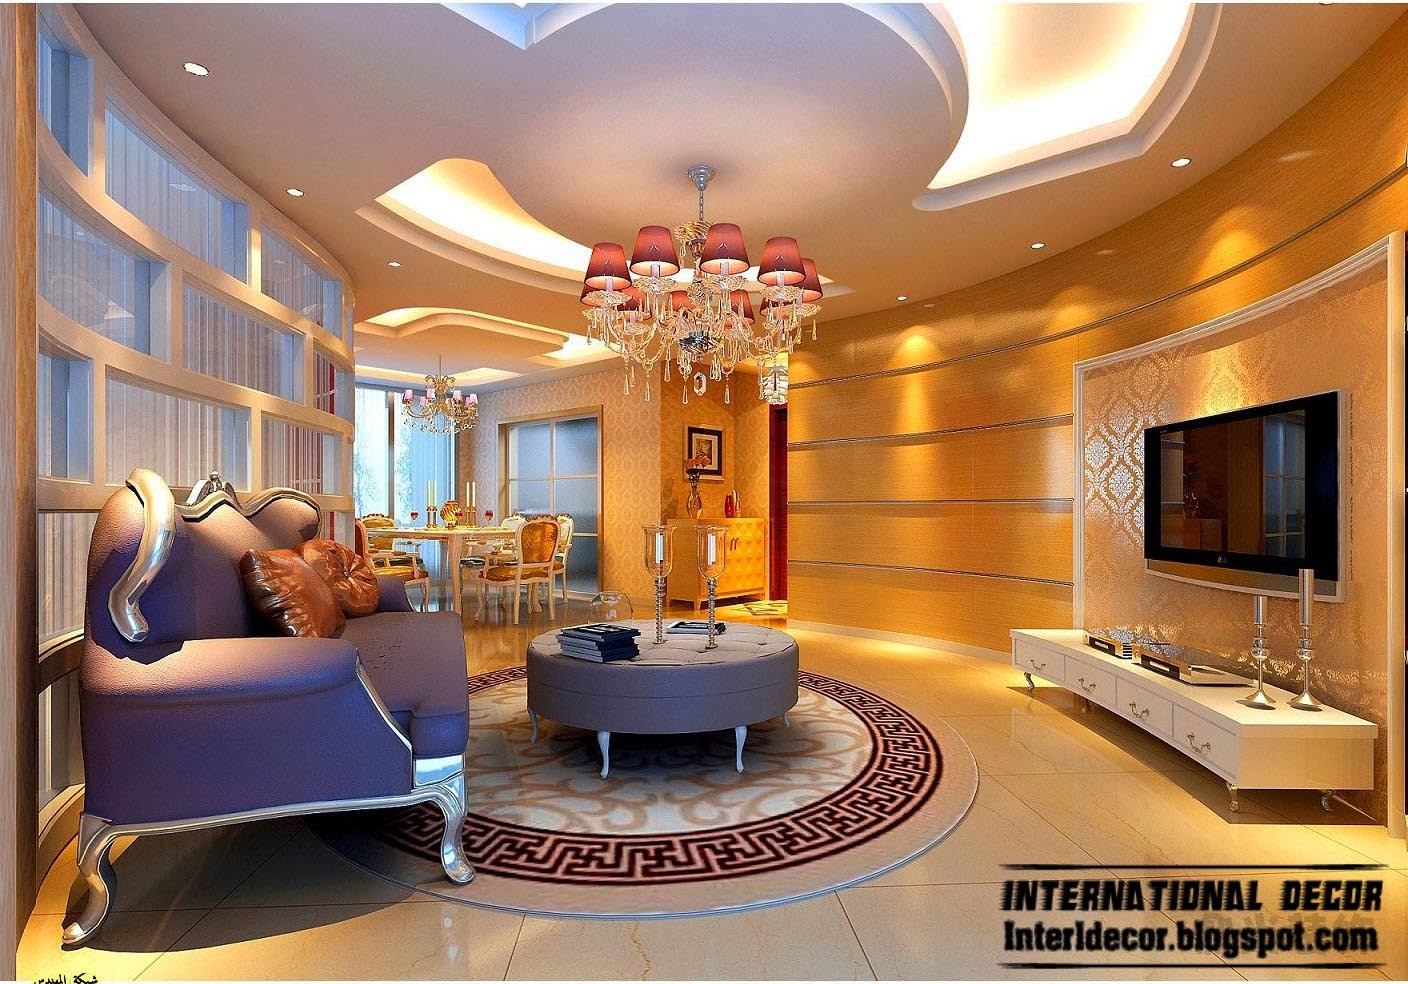 Suspended ceiling pop designs for living room 2015 for International decor false ceiling